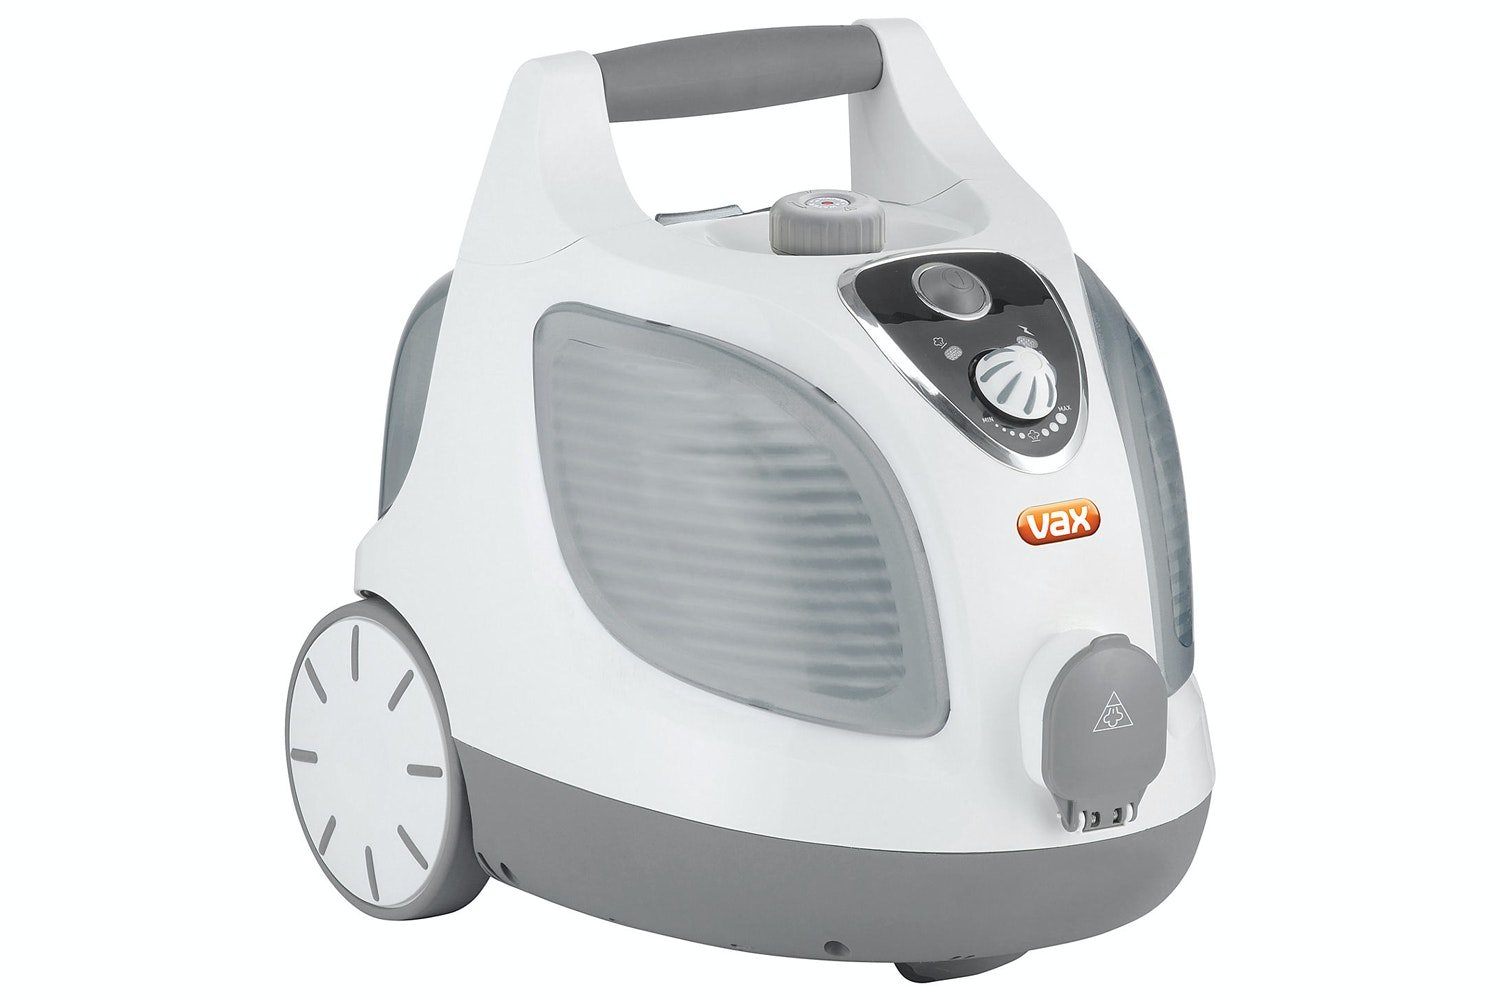 Vax S6S Home Master Steam Cleaner